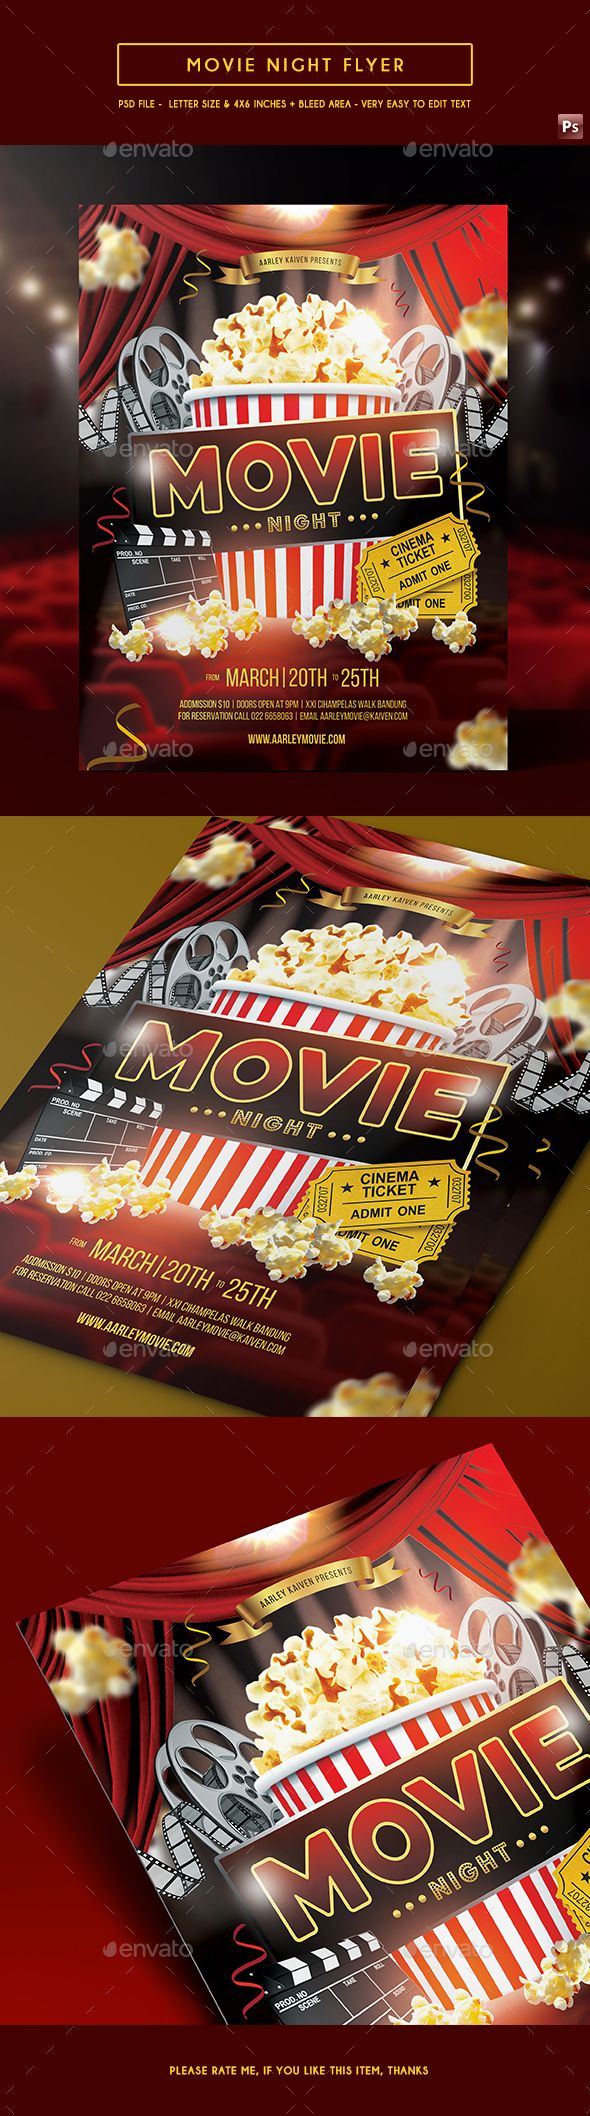 movie night flyer template psd download here httpsgraphicrivernet